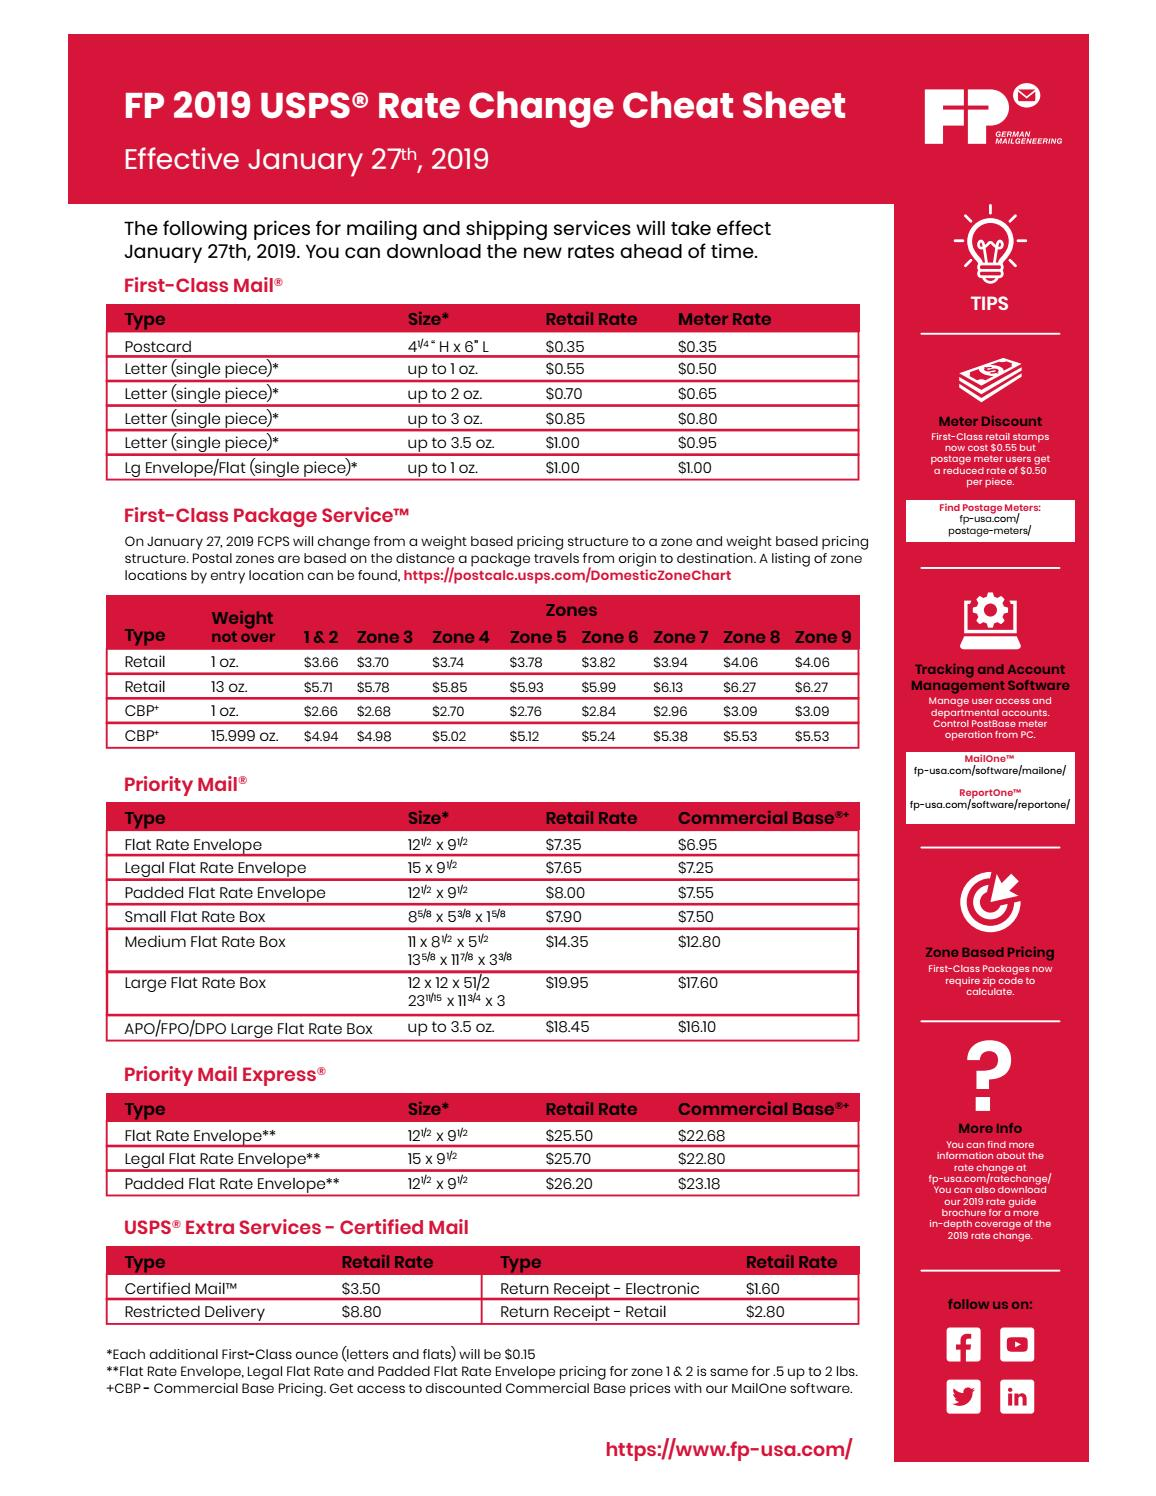 FP Jan 2019 Postal Rate Change Cheat Sheet (editable) by FP